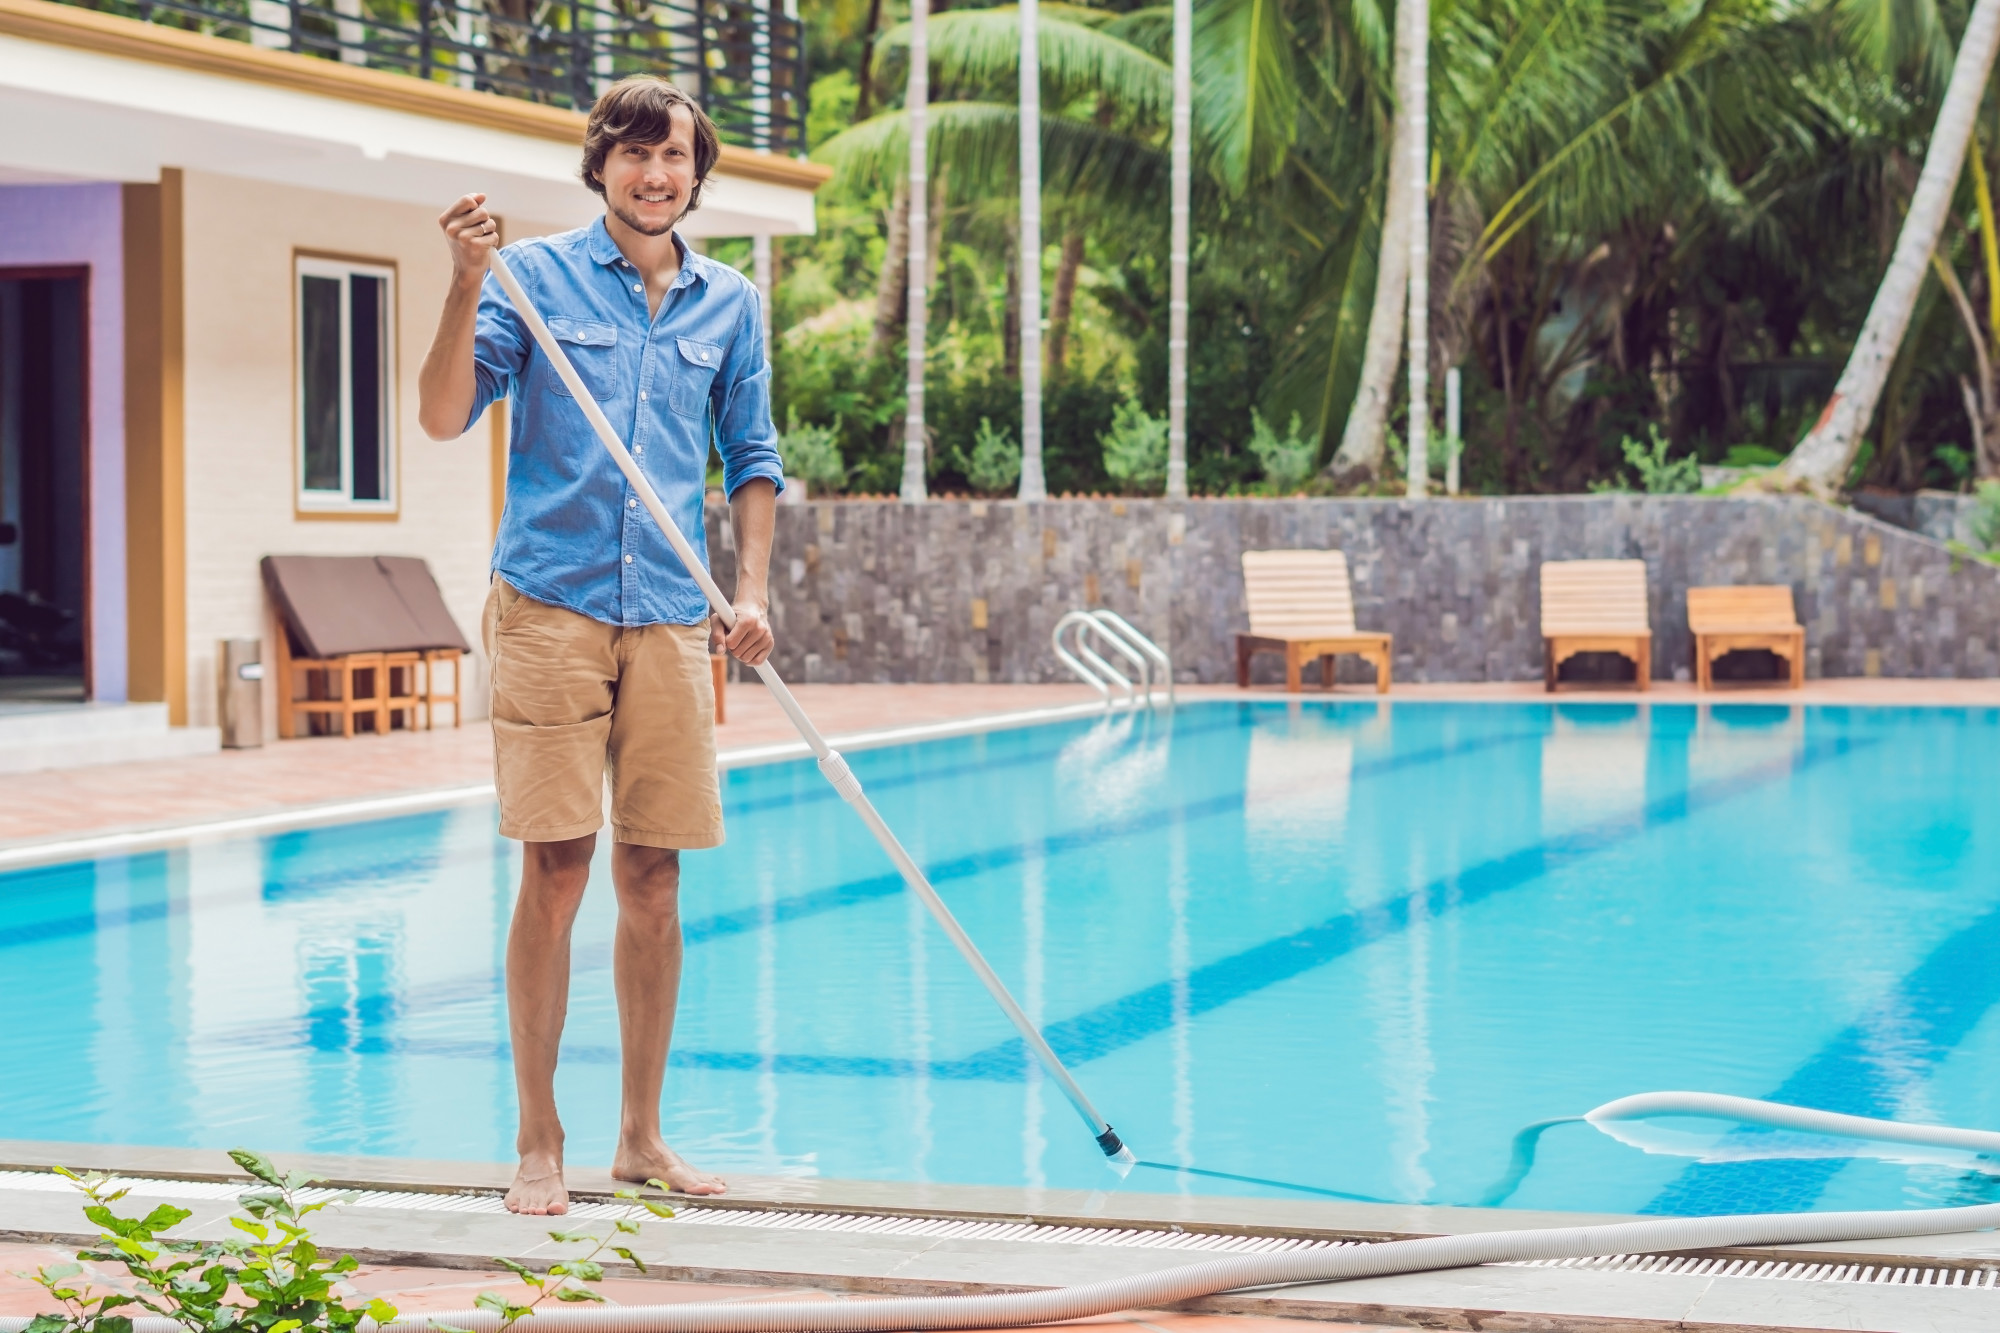 Swimming Pool Maintenance: Tips Every Pool Owner Should Know